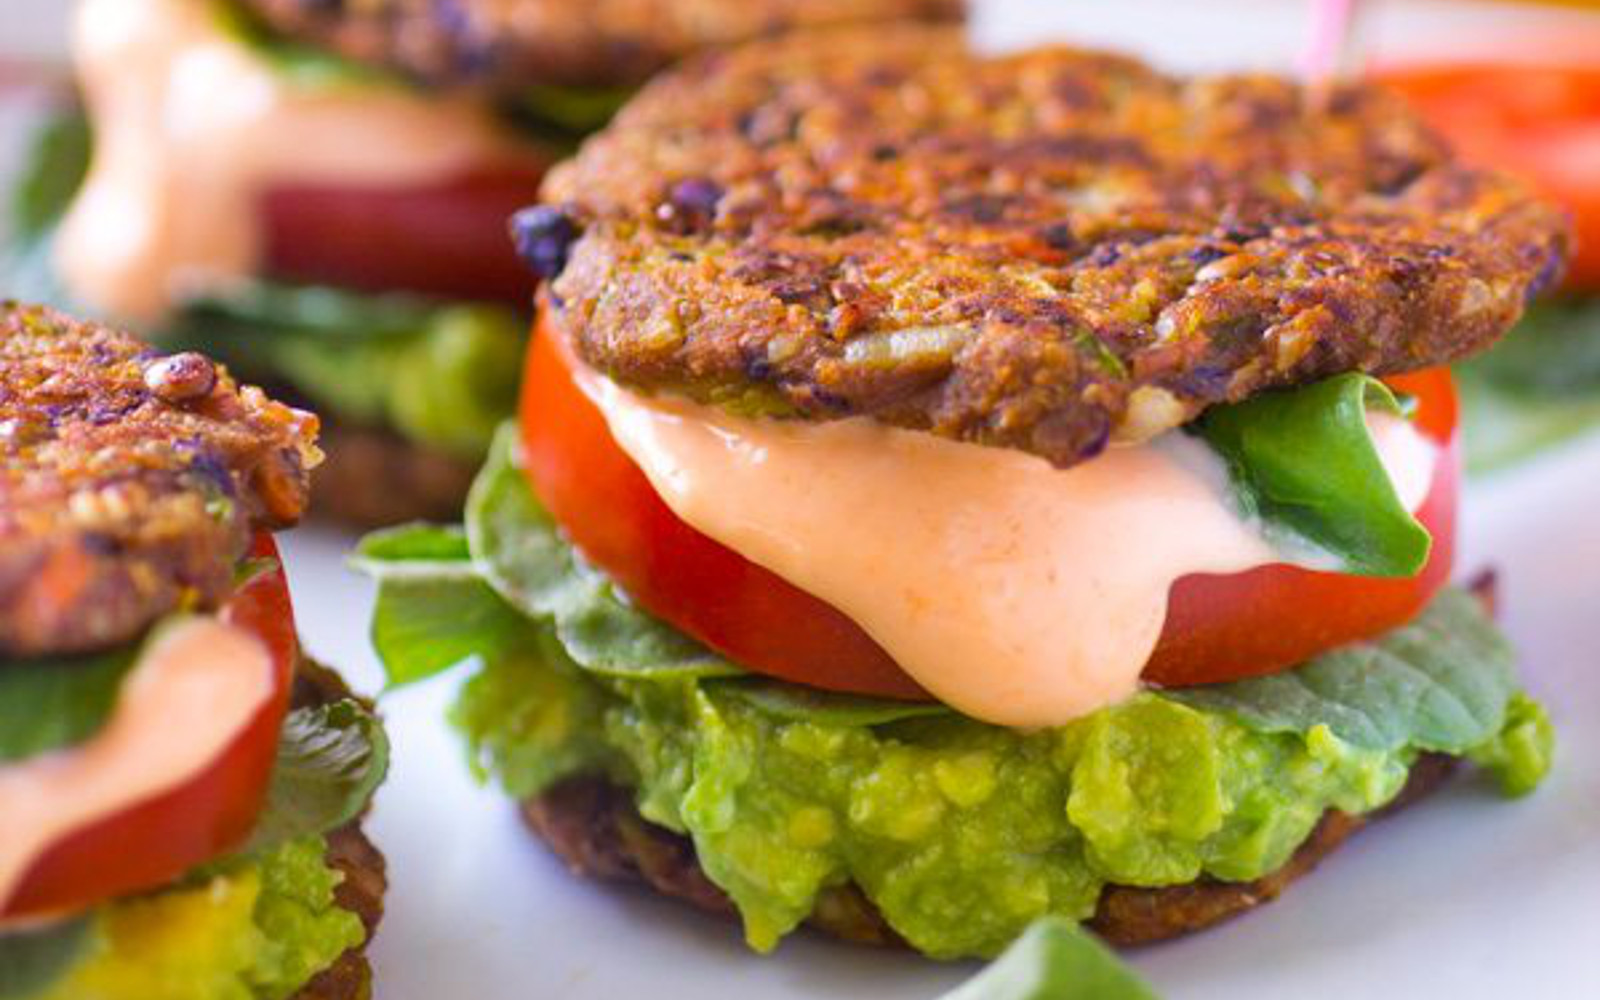 Best Veggie Burger With Carrots and Pinto Beans